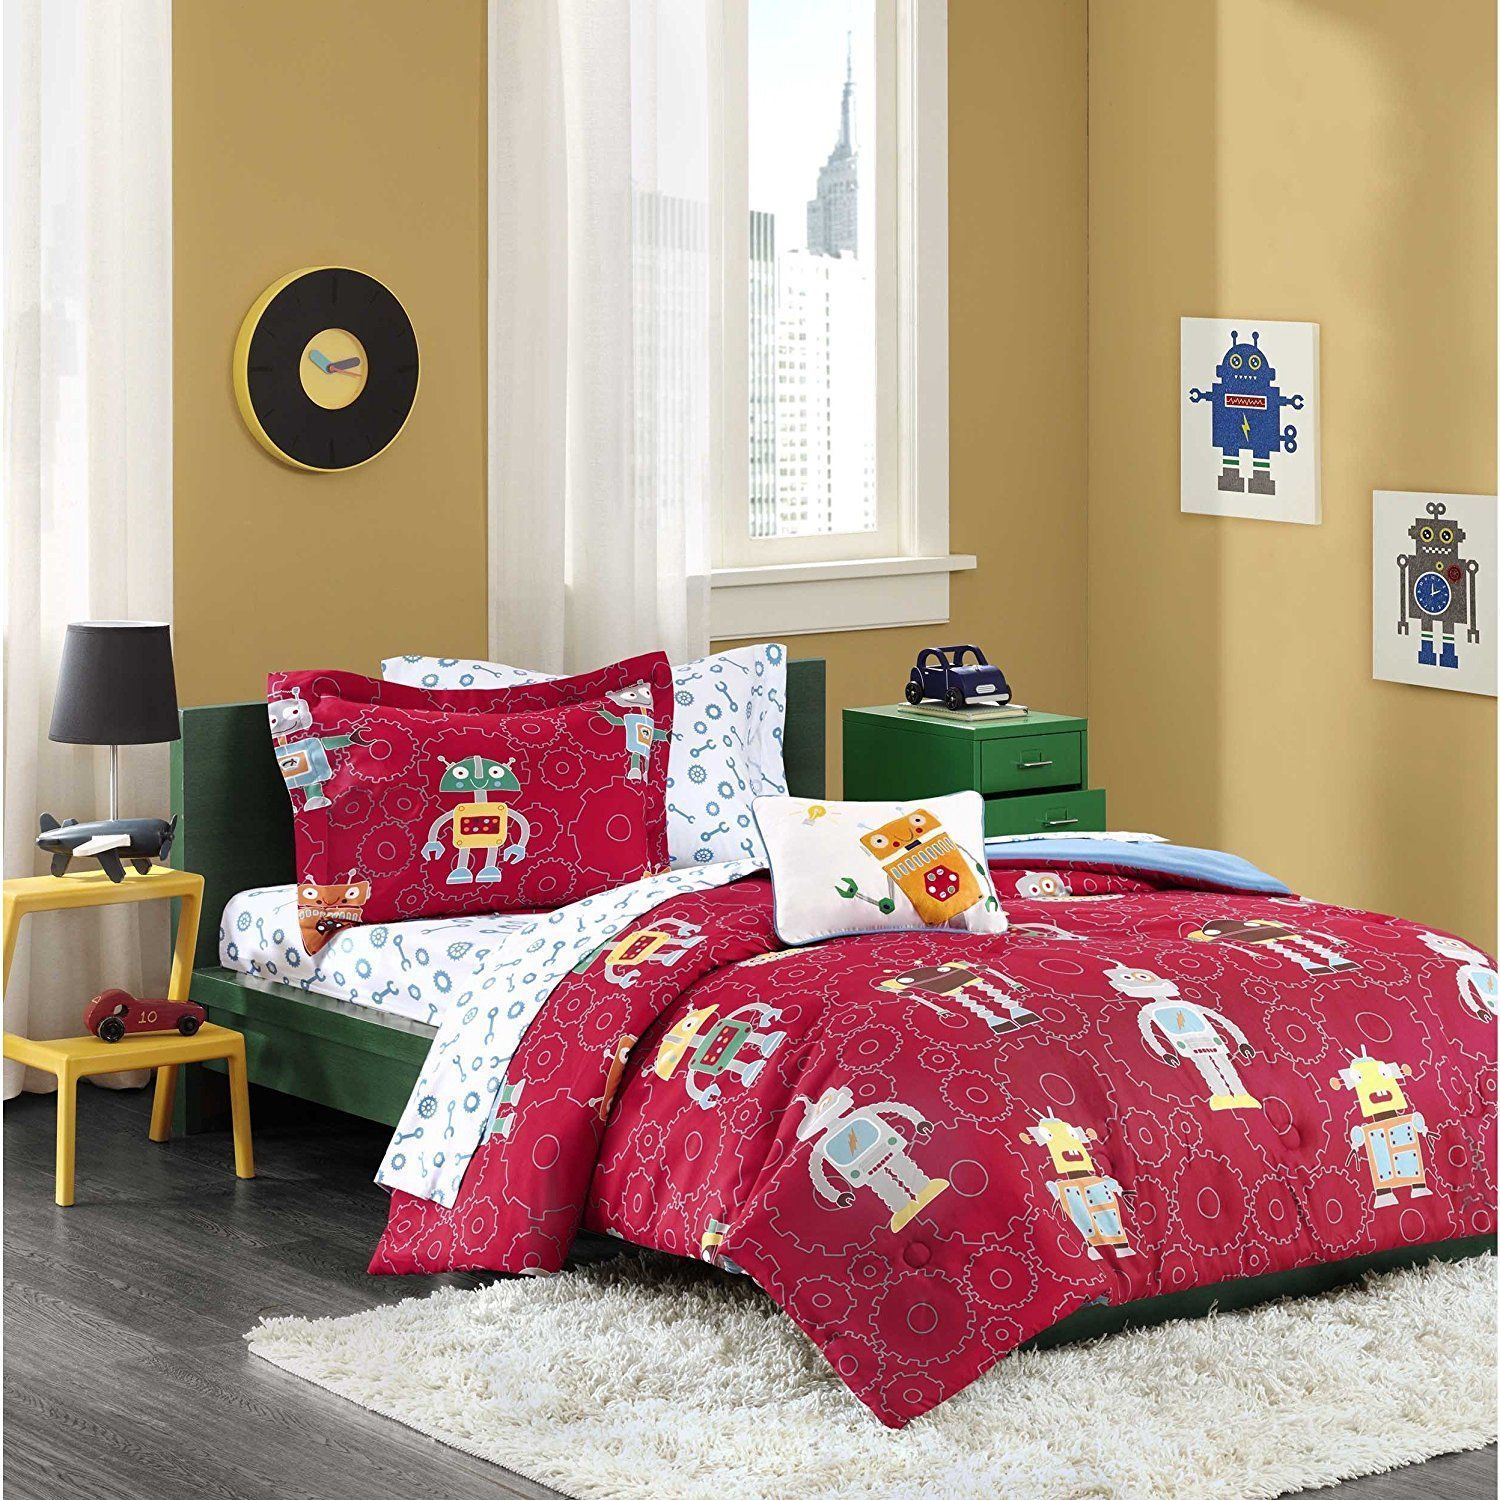 8 Piece Boys Cute Outerspace Robot Themed Comforter Full Set,